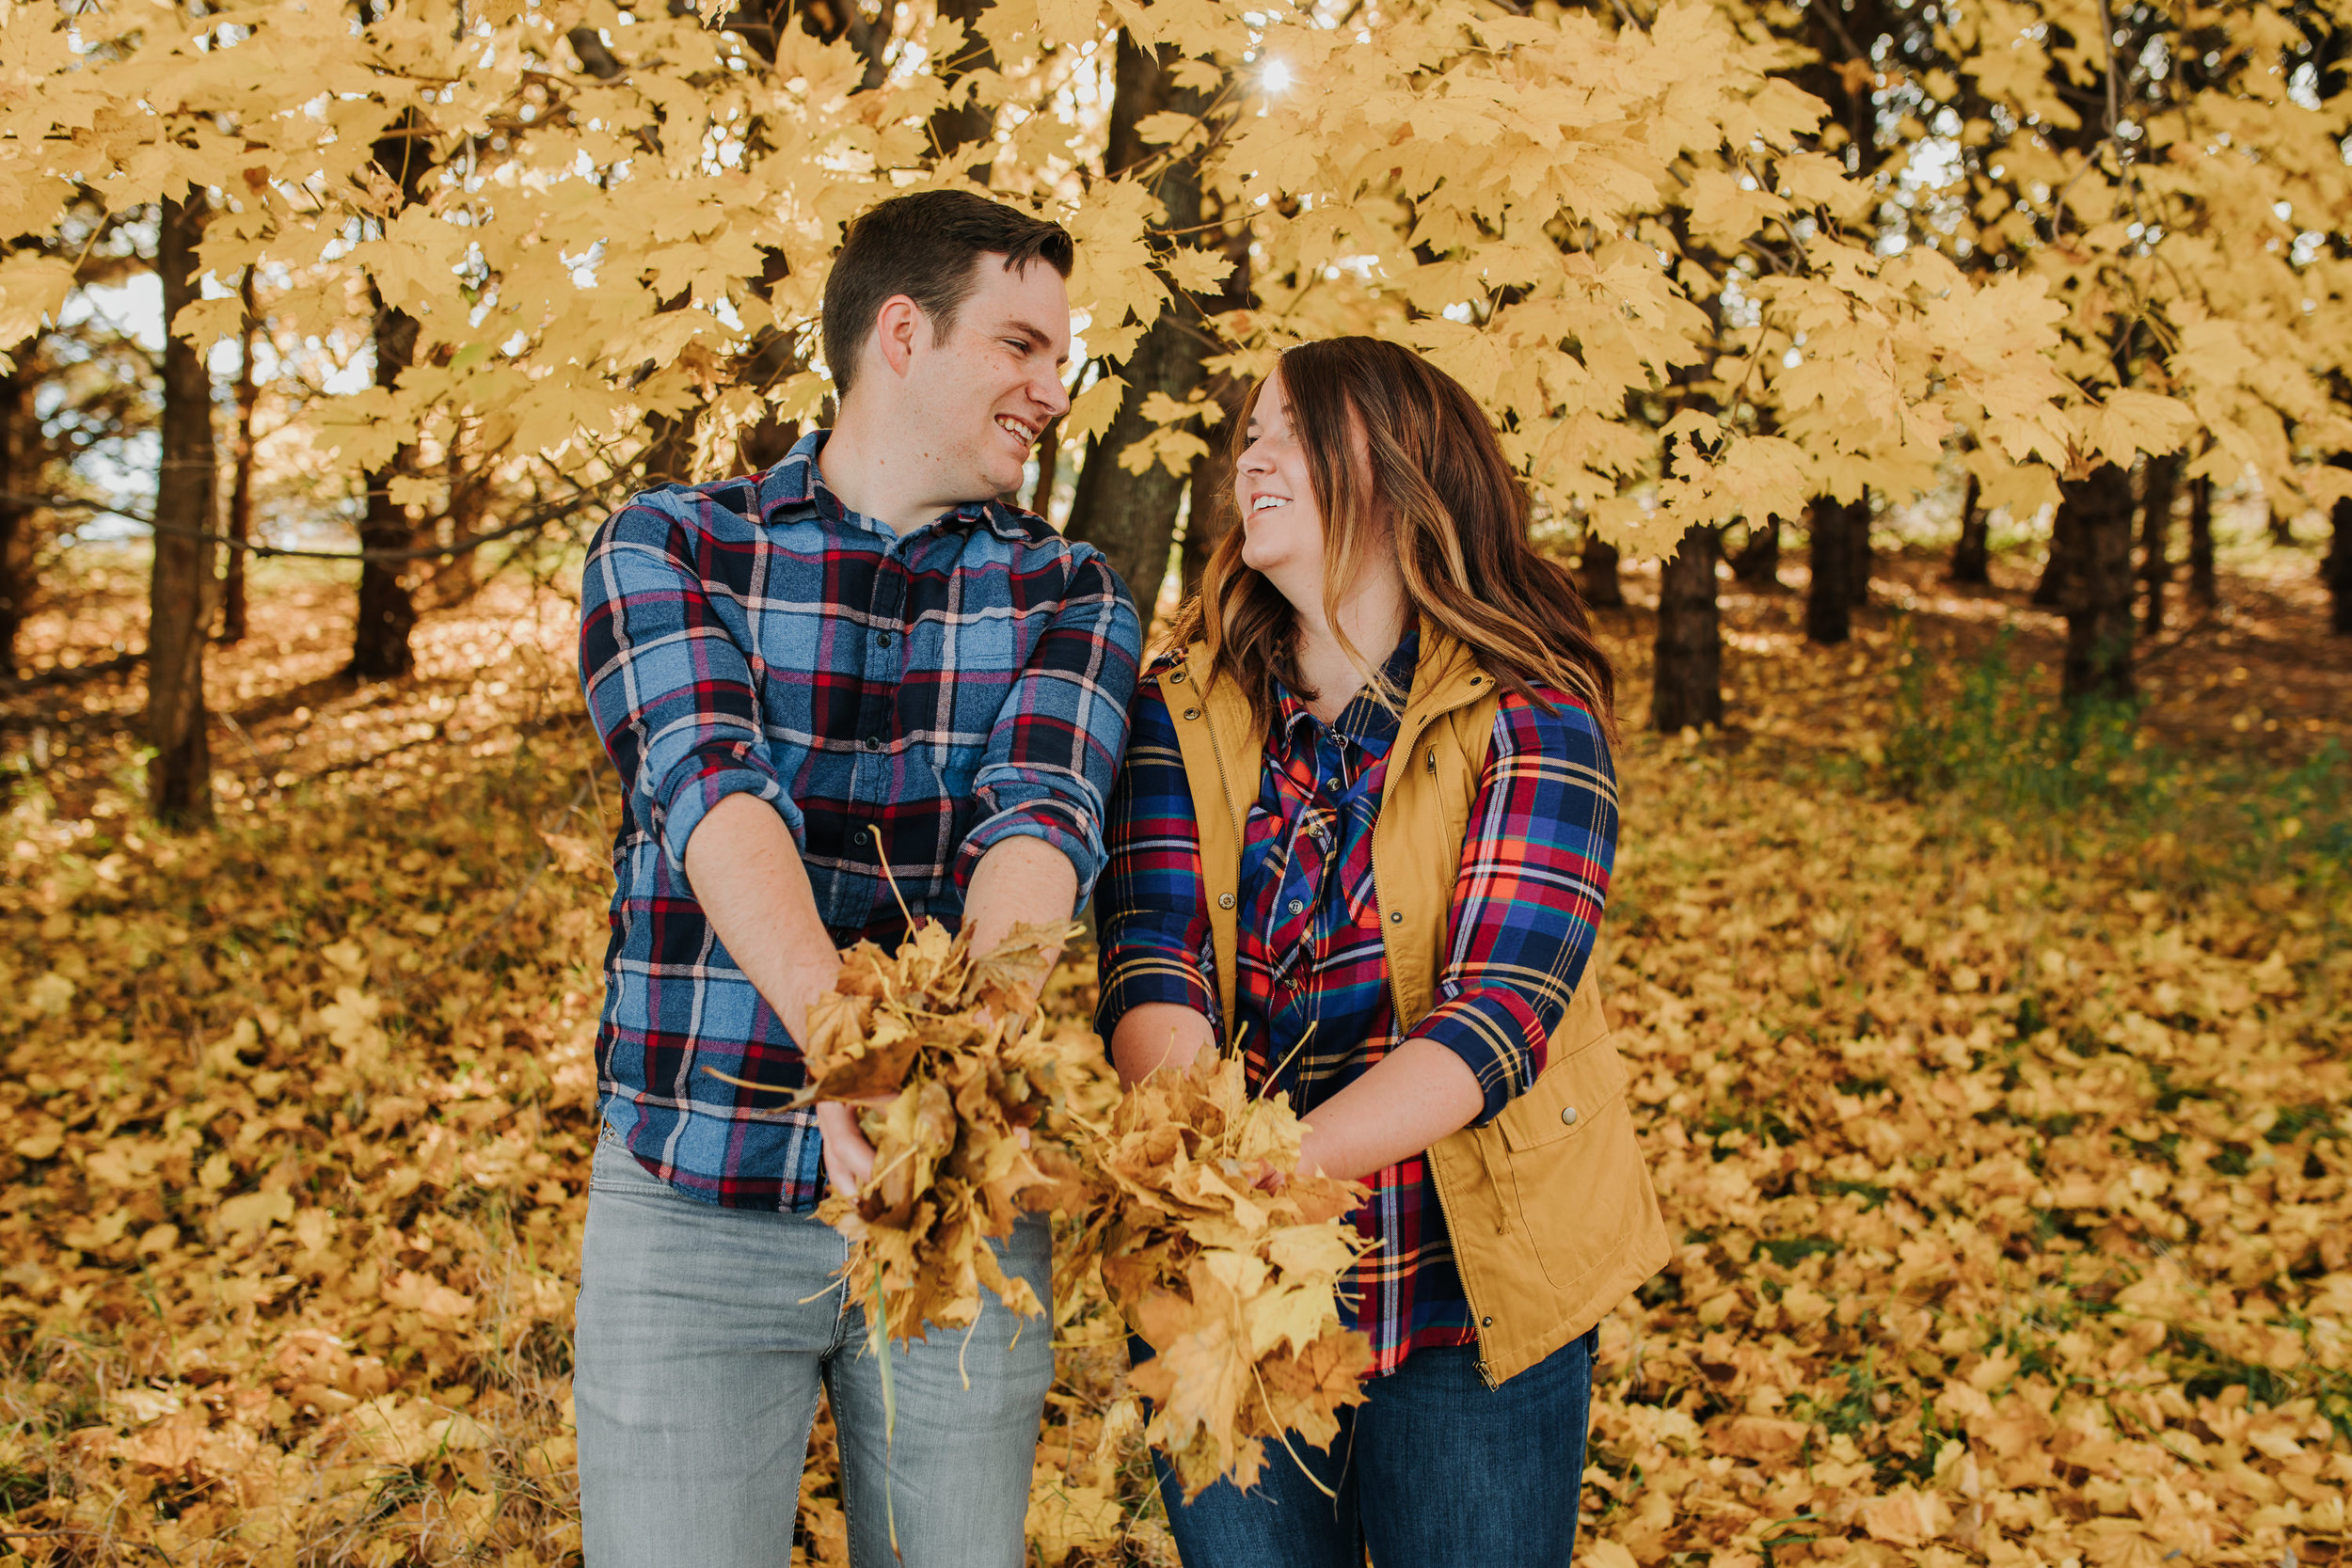 Katie & Adam - Engaged - Nathaniel Jensen Photography - Omaha Nebraska Wedding Photograper - Omaha Nebraska Engagement Session - Chalco Hills Engagement Session-16.jpg